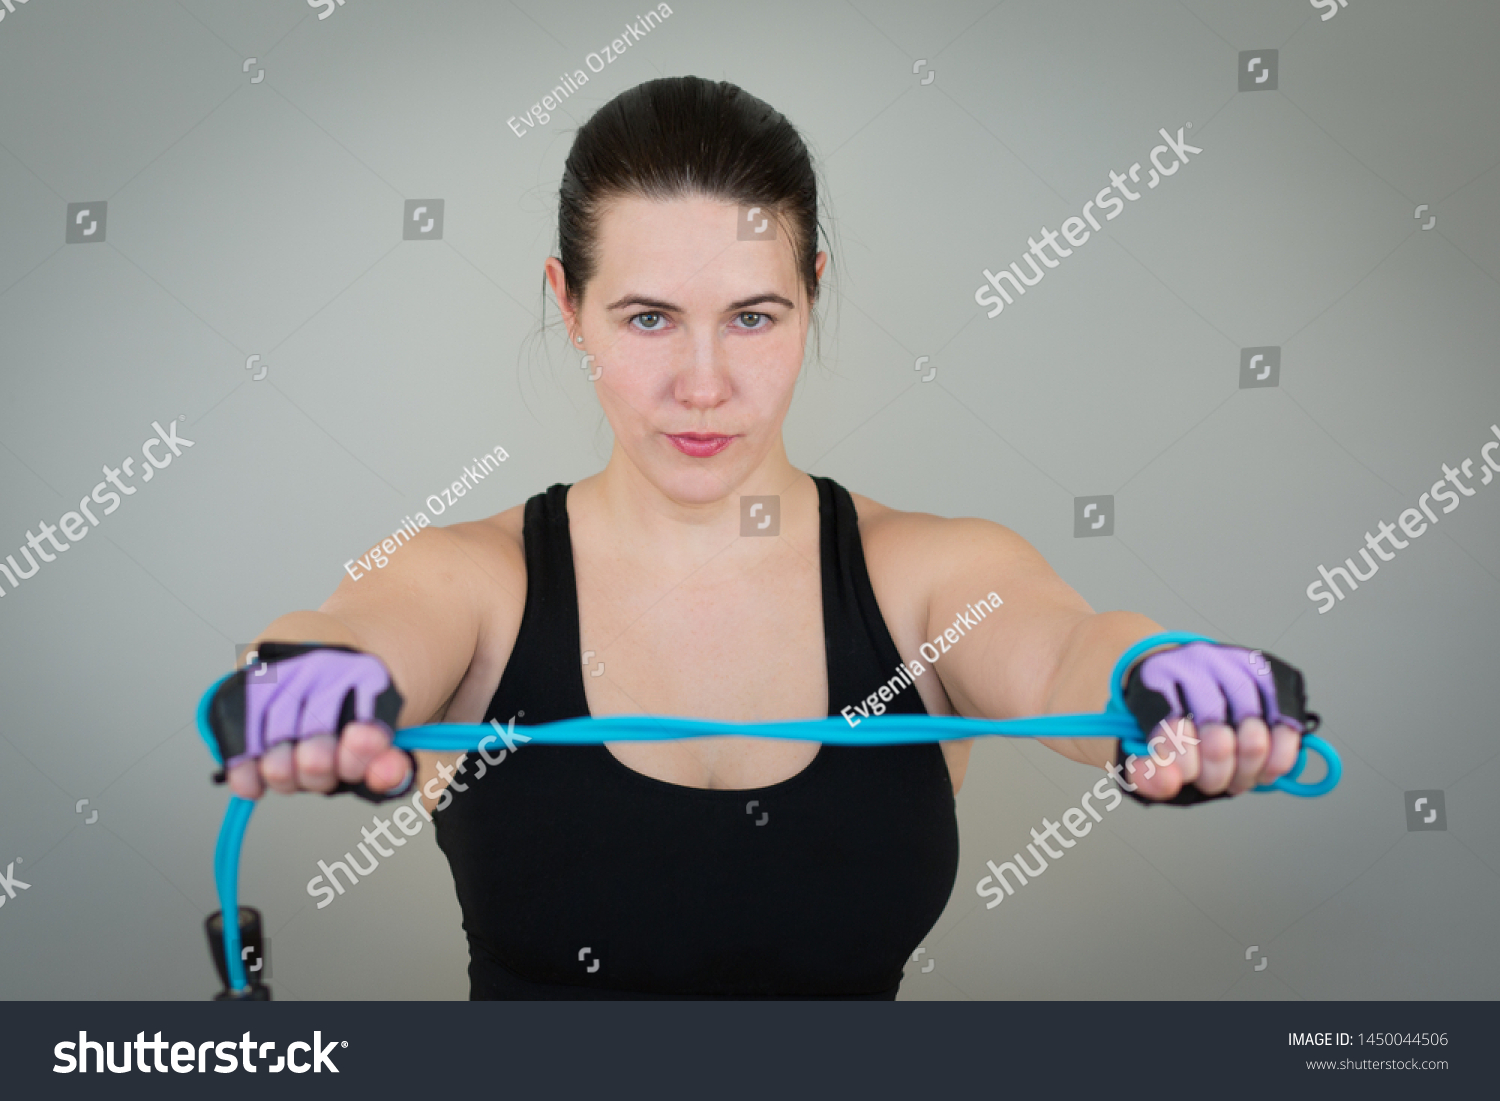 beautiful white caucasian girl in a black T-shirt on fitness holding a jump rope on outstretched arms. Isolated on gray studio background